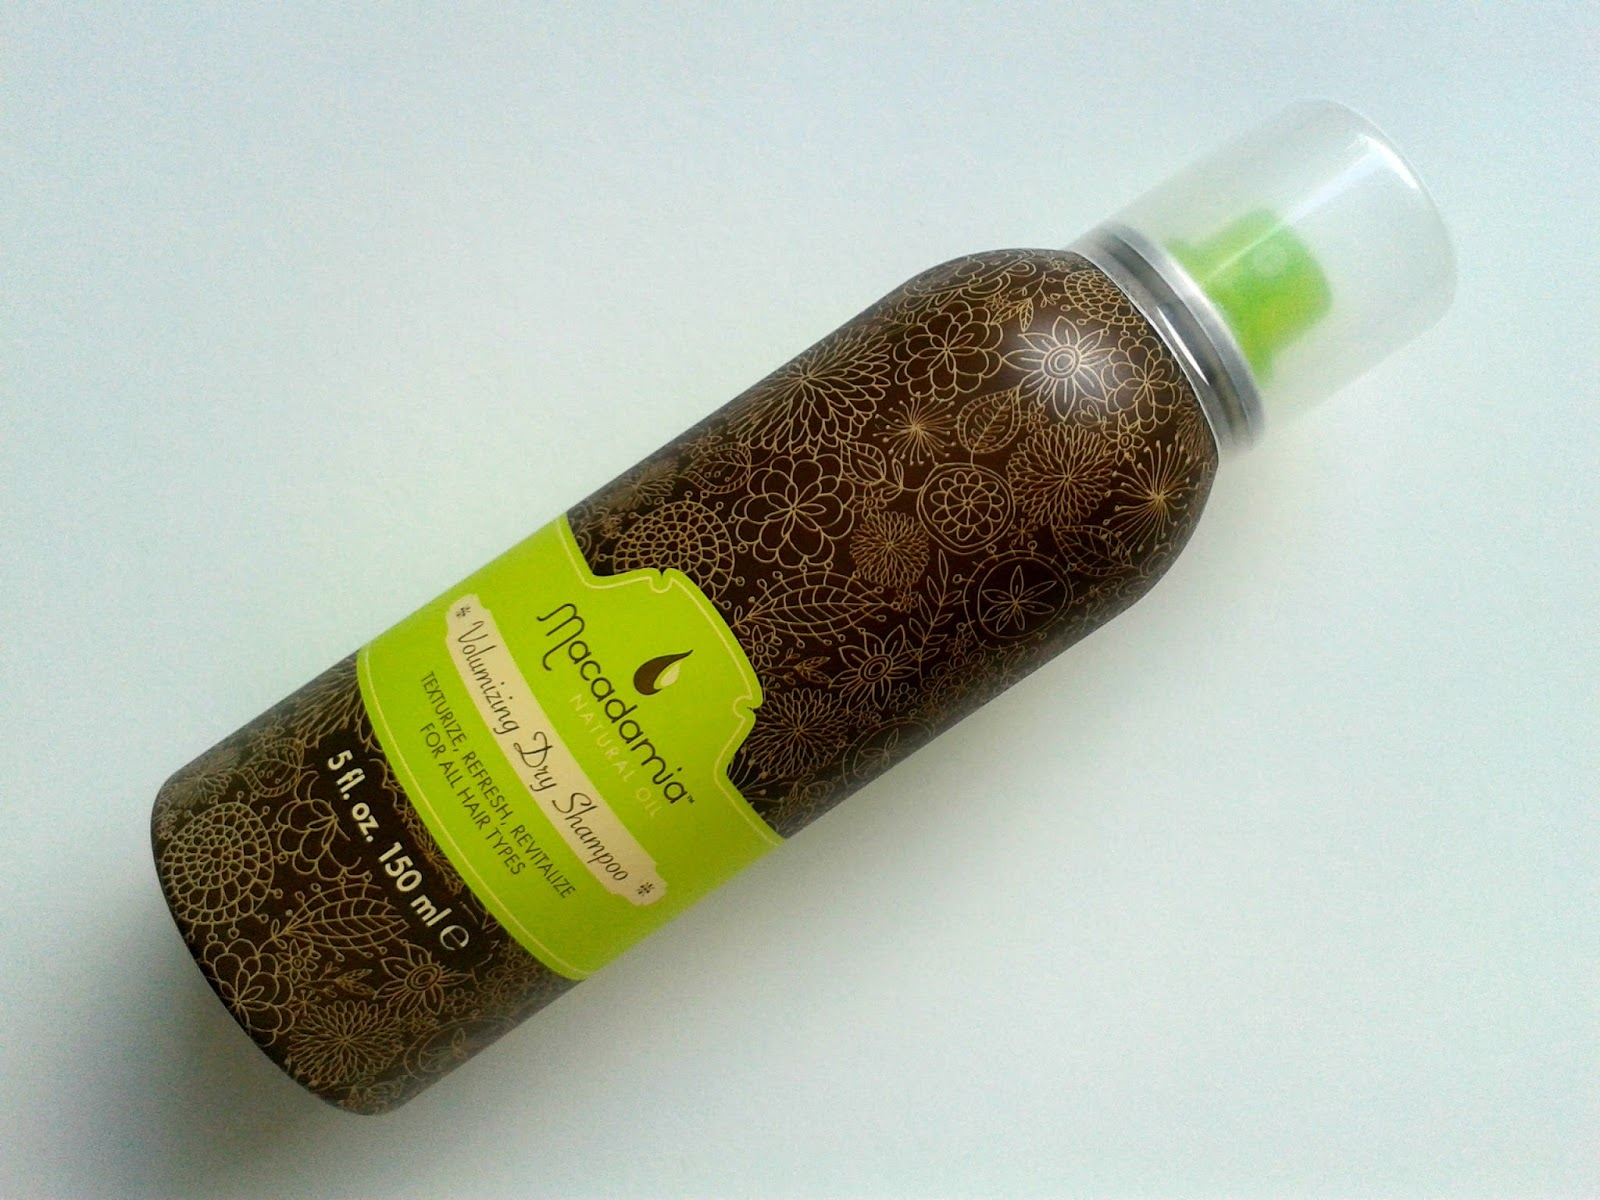 Macadamia Volumizing Dry Shampoo Beauty Review